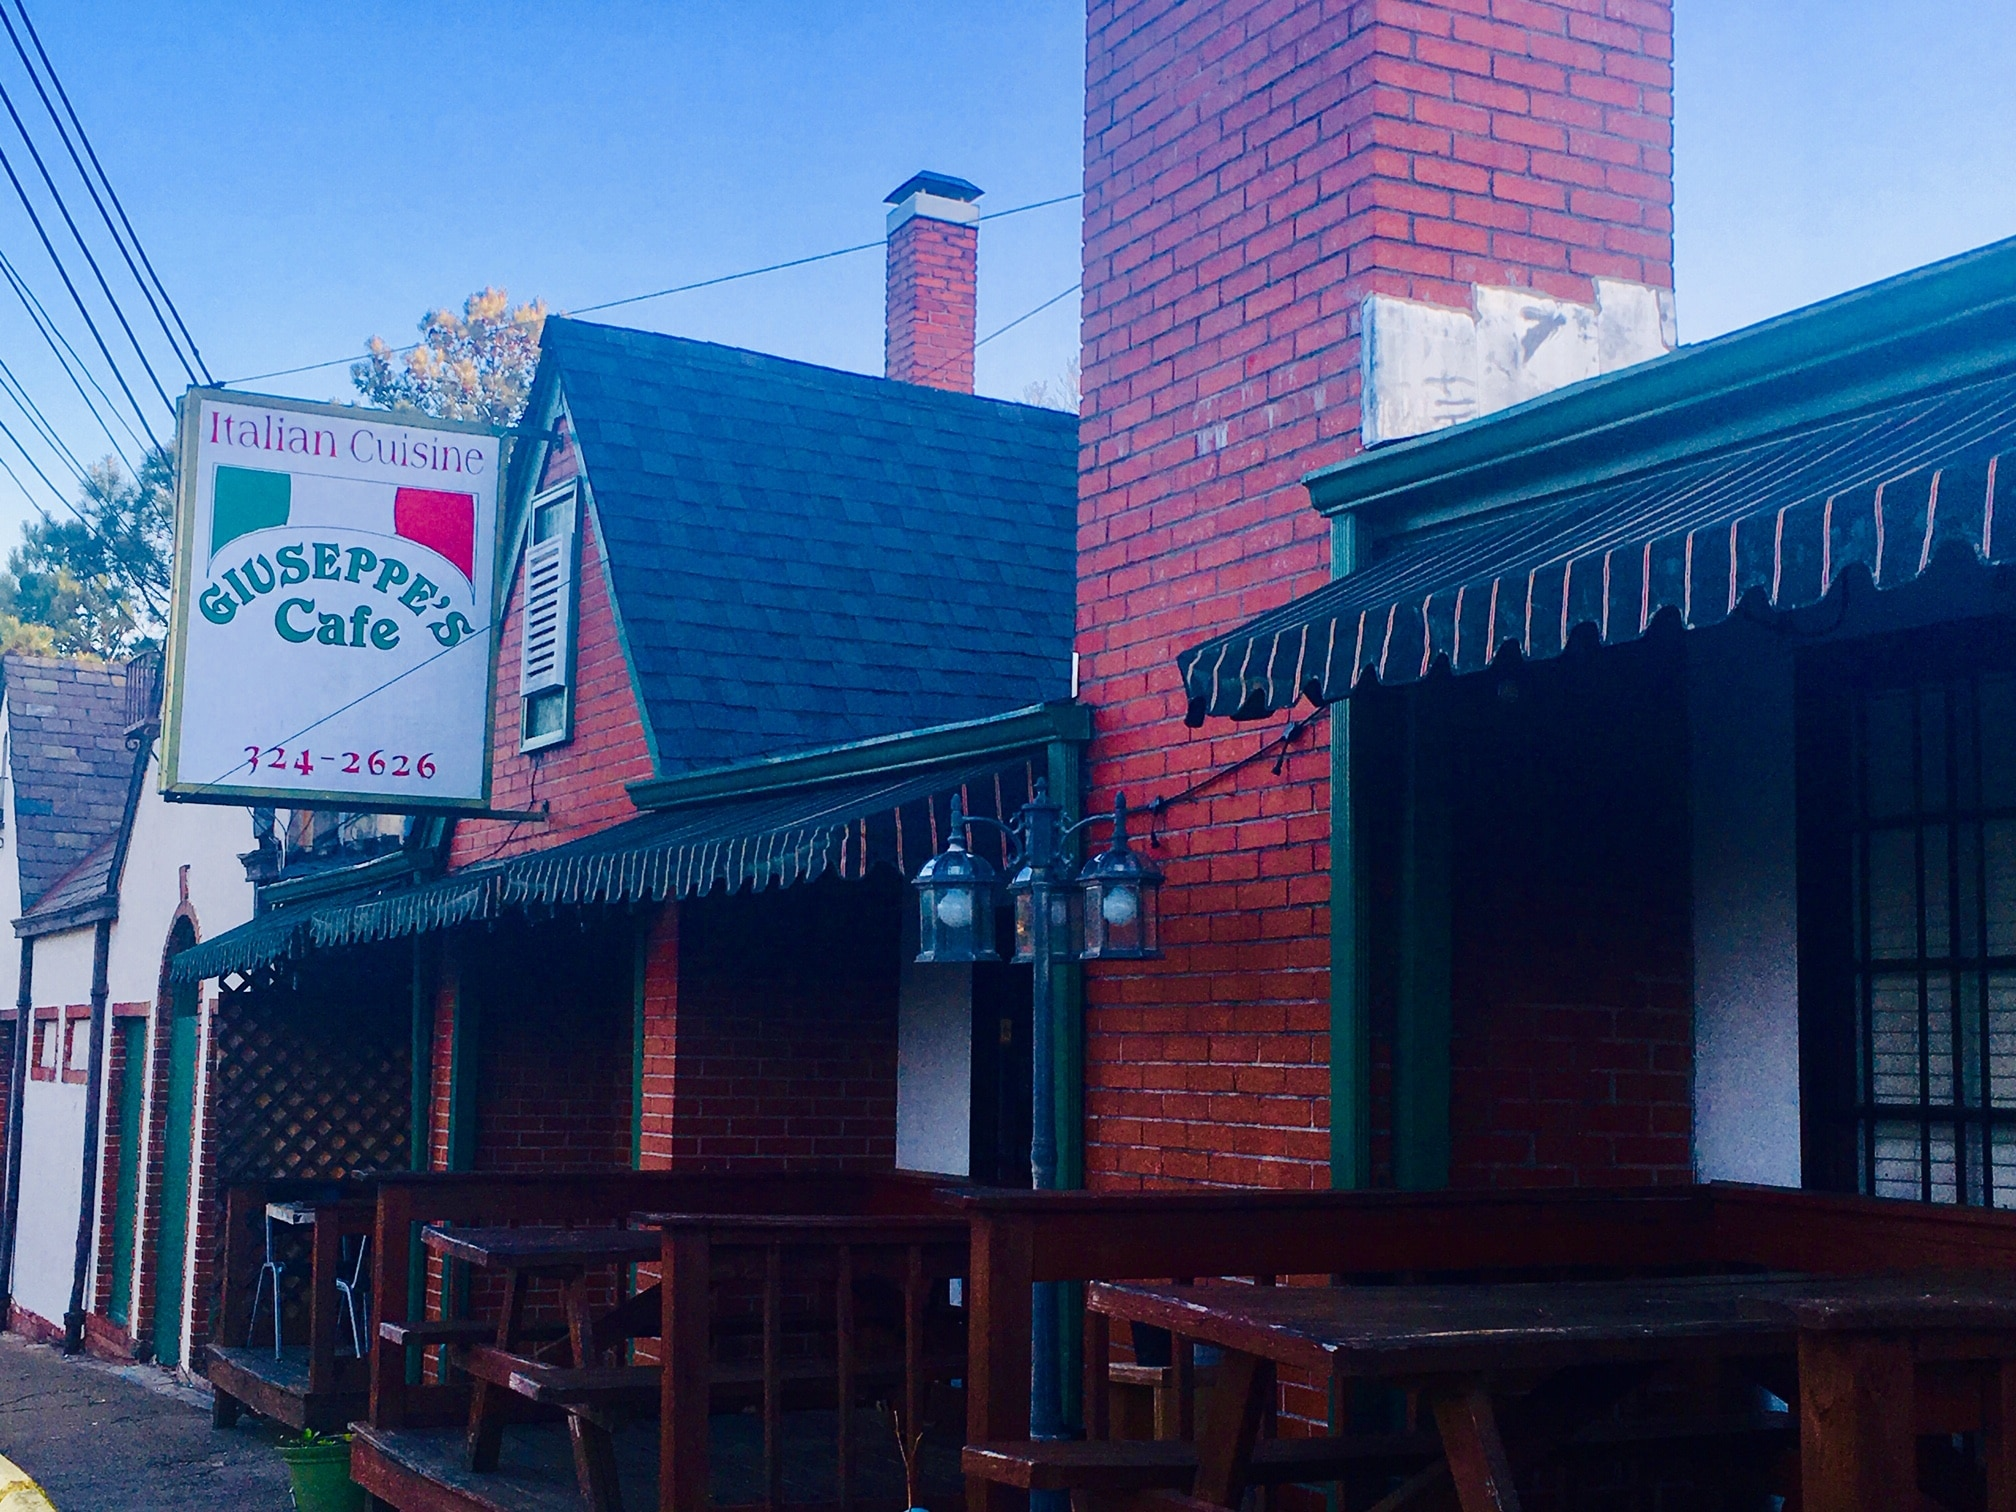 Giuseppe's, Irondale Cafe, Snapper Grabbers among establishments receiving  95 and above food service scores in March | Bham Now